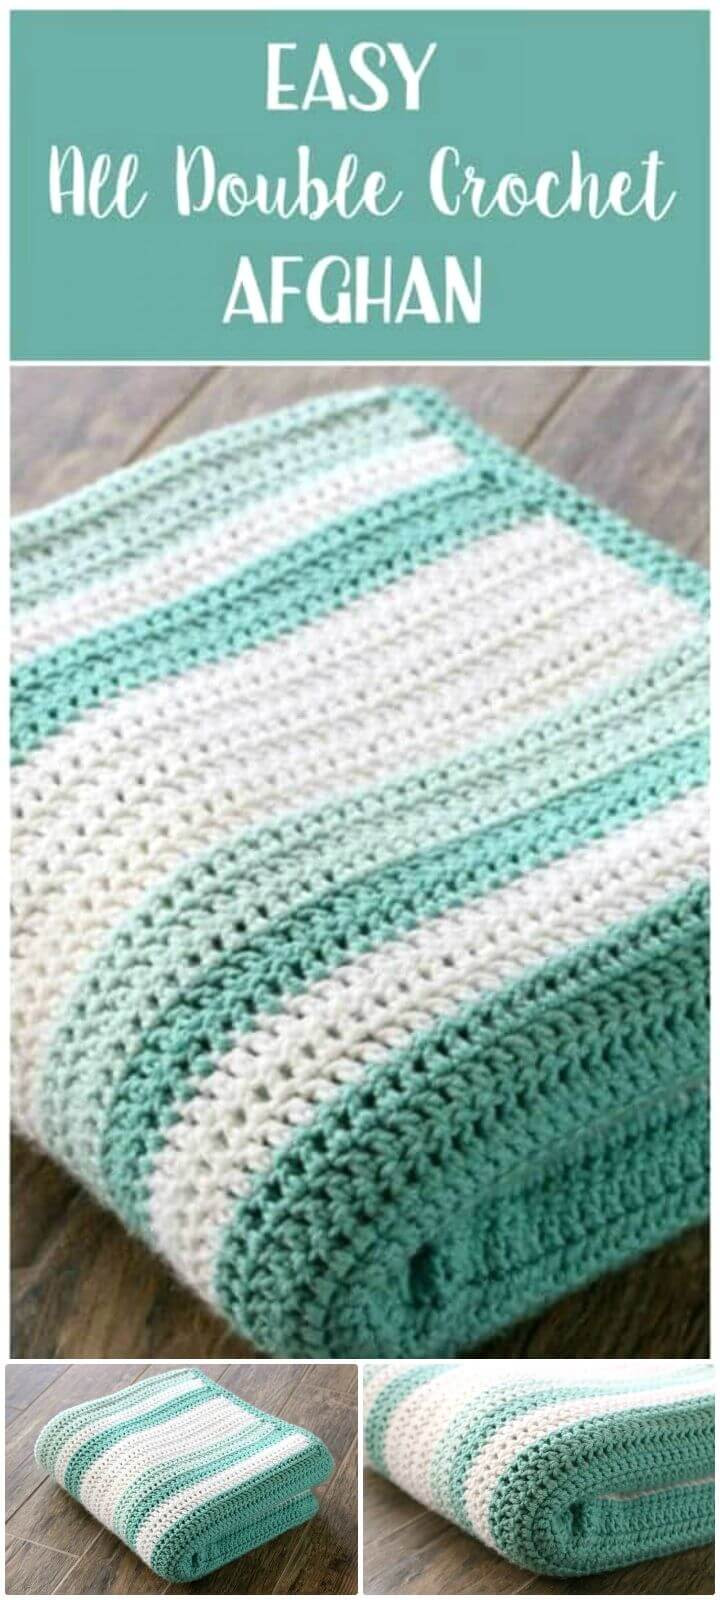 New Crochet Afghan Patterns 41 Free Patterns for Beginners All Free Crochet Afghan Patterns Of New 48 Pics All Free Crochet Afghan Patterns